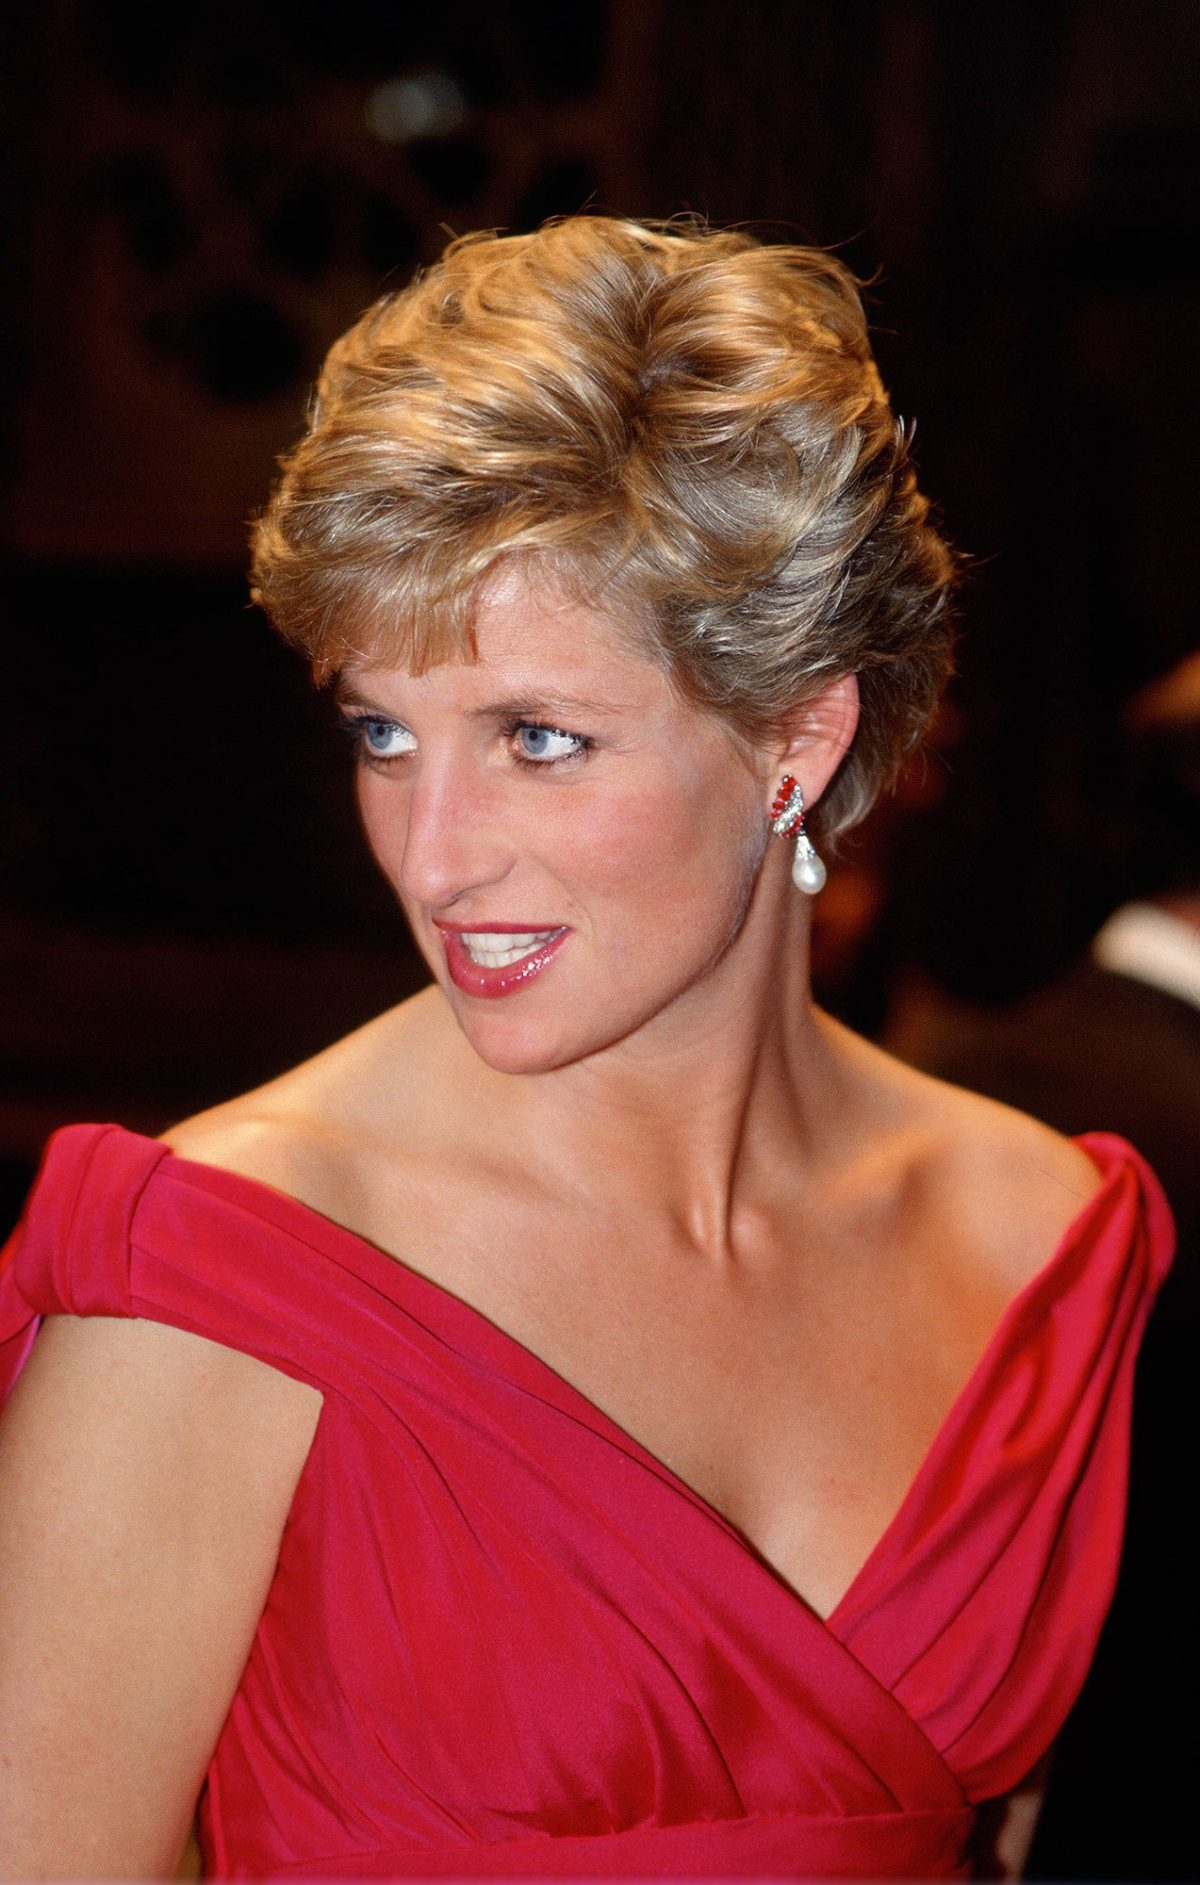 JAPAN - NOVEMBER 14:  Diana, Princess of Wales attends a performance by the Welsh National Opera during a visit to Japan  (Photo by Tim Graham/Getty Images)